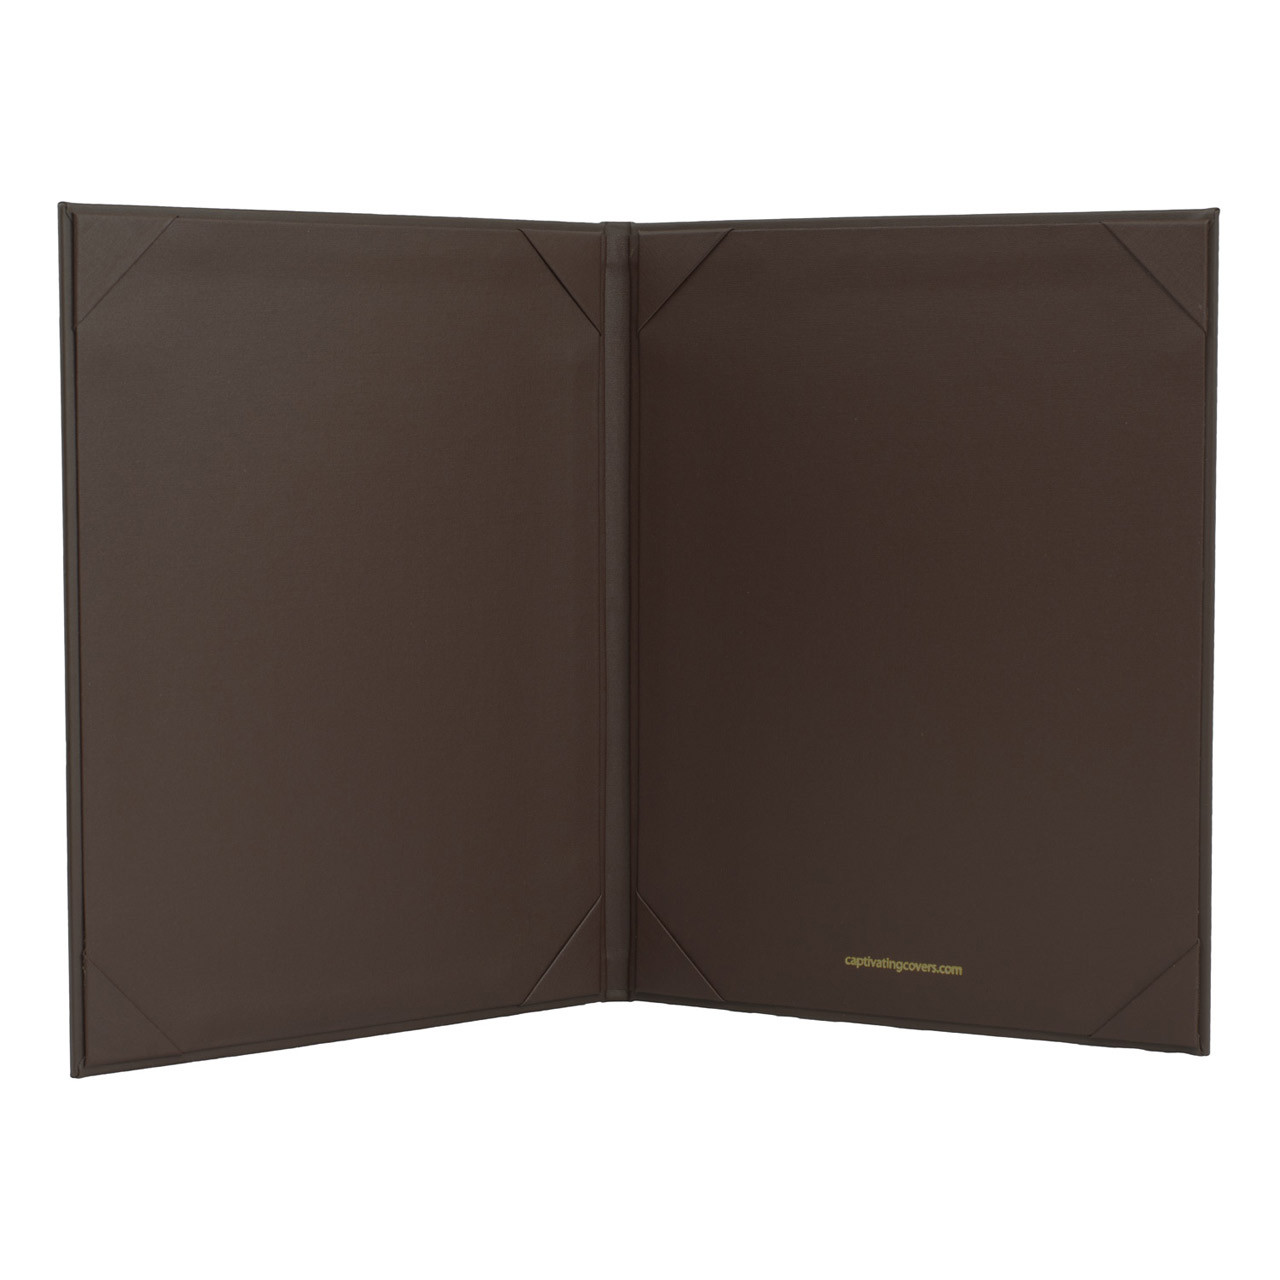 "Menu Cover in Dark Brown Faux Leather  2-Panels for 5.5"" x 8.5"" Menu Sheets (inside shown)"